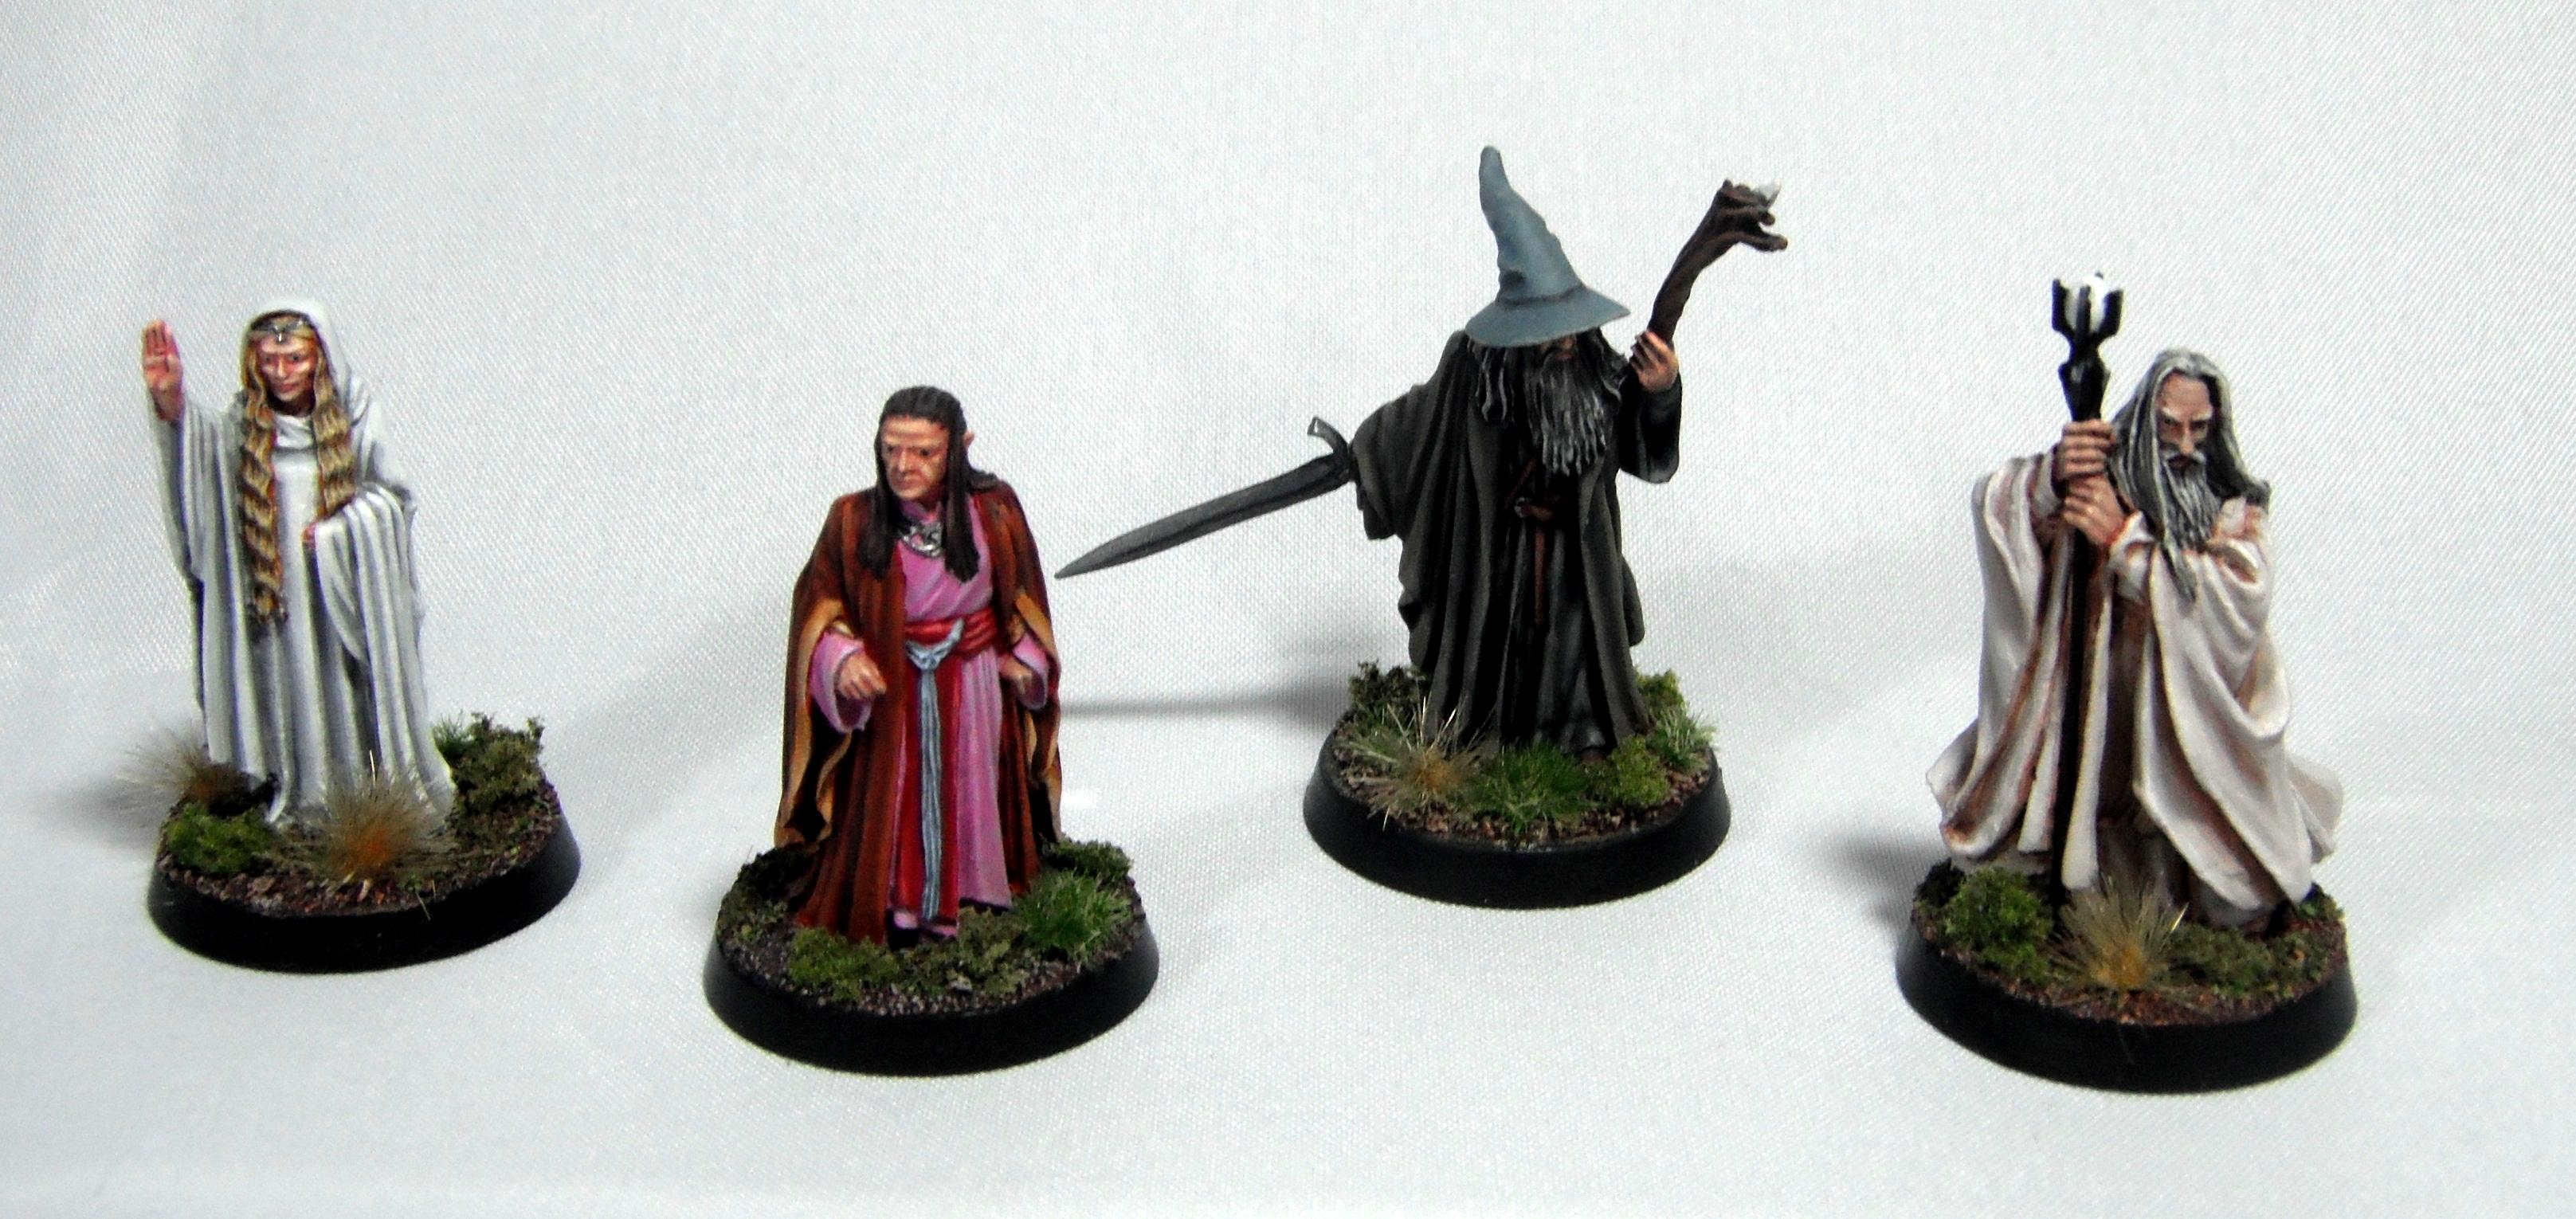 Elrond, Galadriel, Gandald, Lord Of The Rings, Saruman, The Hobbit, White Council